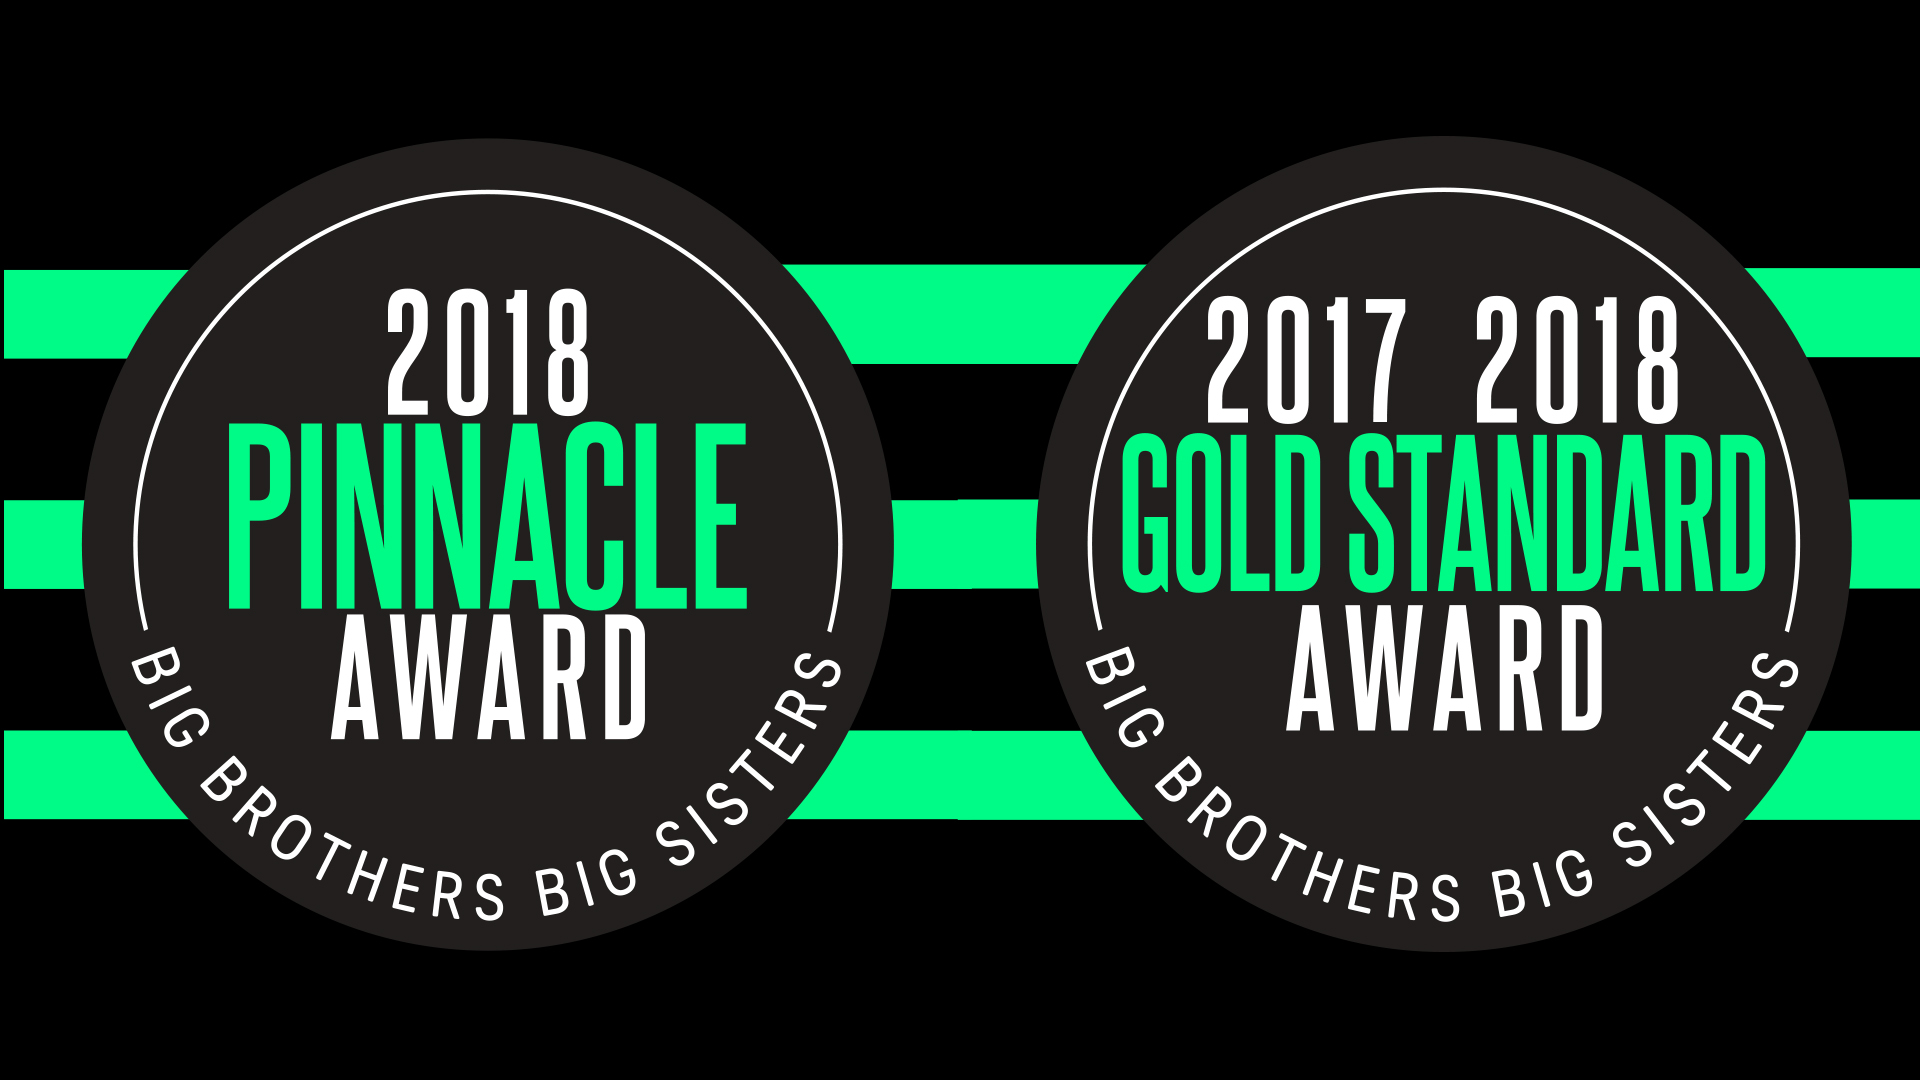 2f86fba81 For the first time in its 54-year history, the Big Brothers Big Sisters of  Tampa Bay agency has been named a Pinnacle Award winner for 2018 by Big  Brothers ...